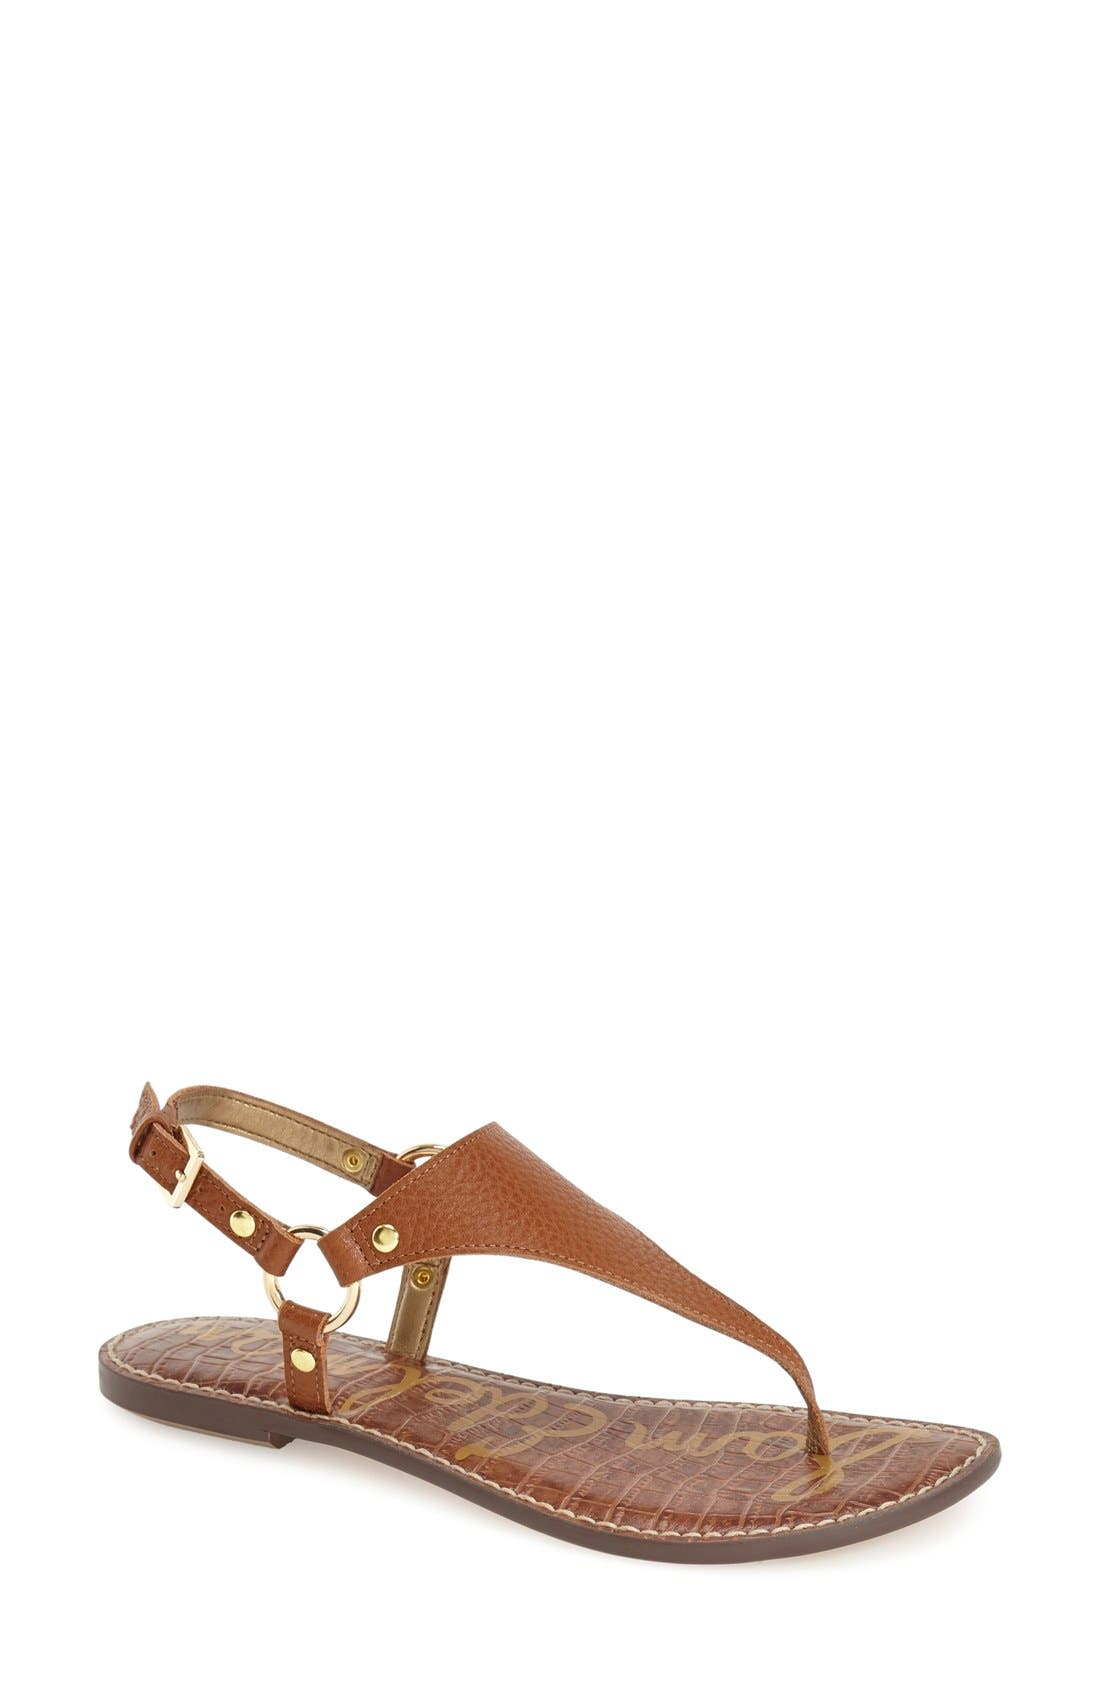 Alternate Image 1 Selected - Sam Edelman Greta Sandal (Women)